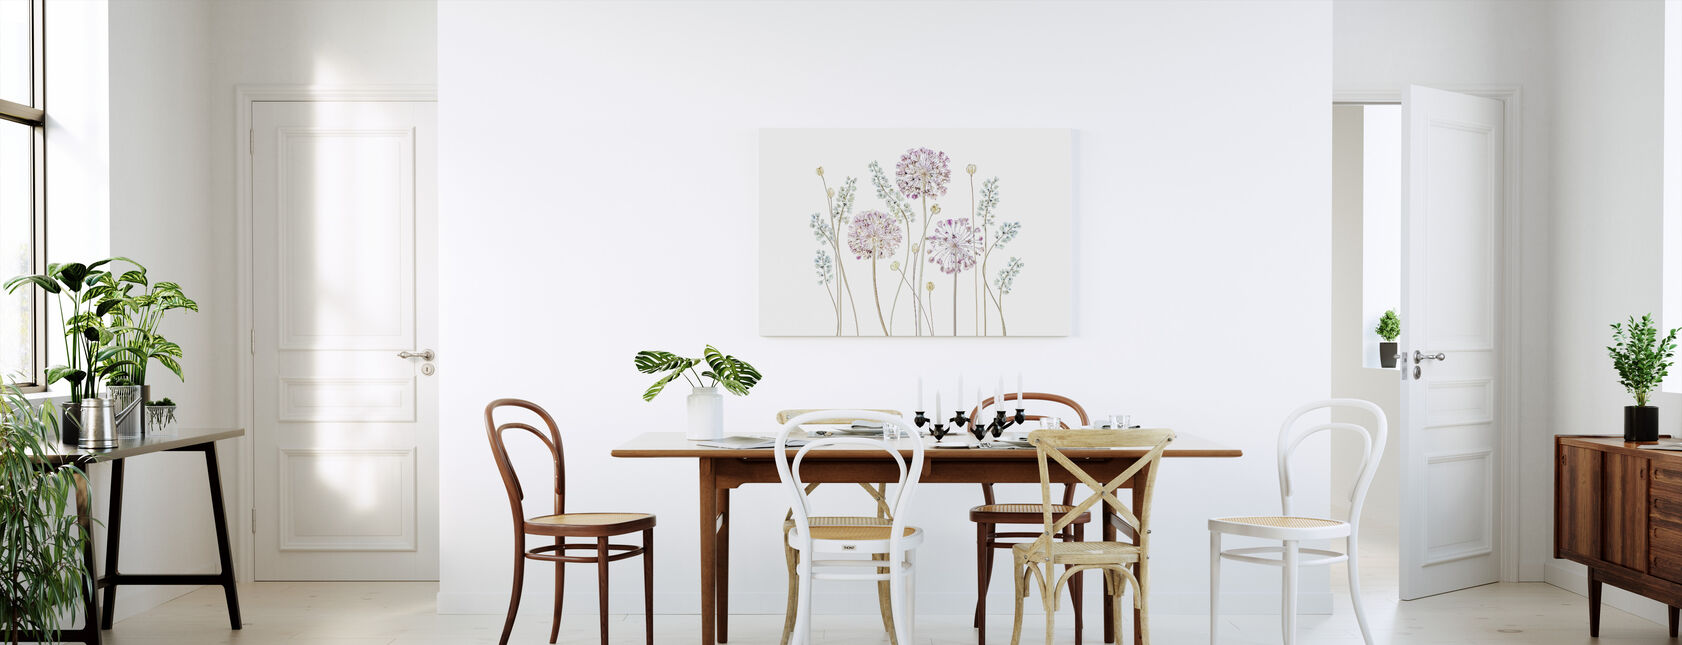 Allium - Canvas print - Kitchen